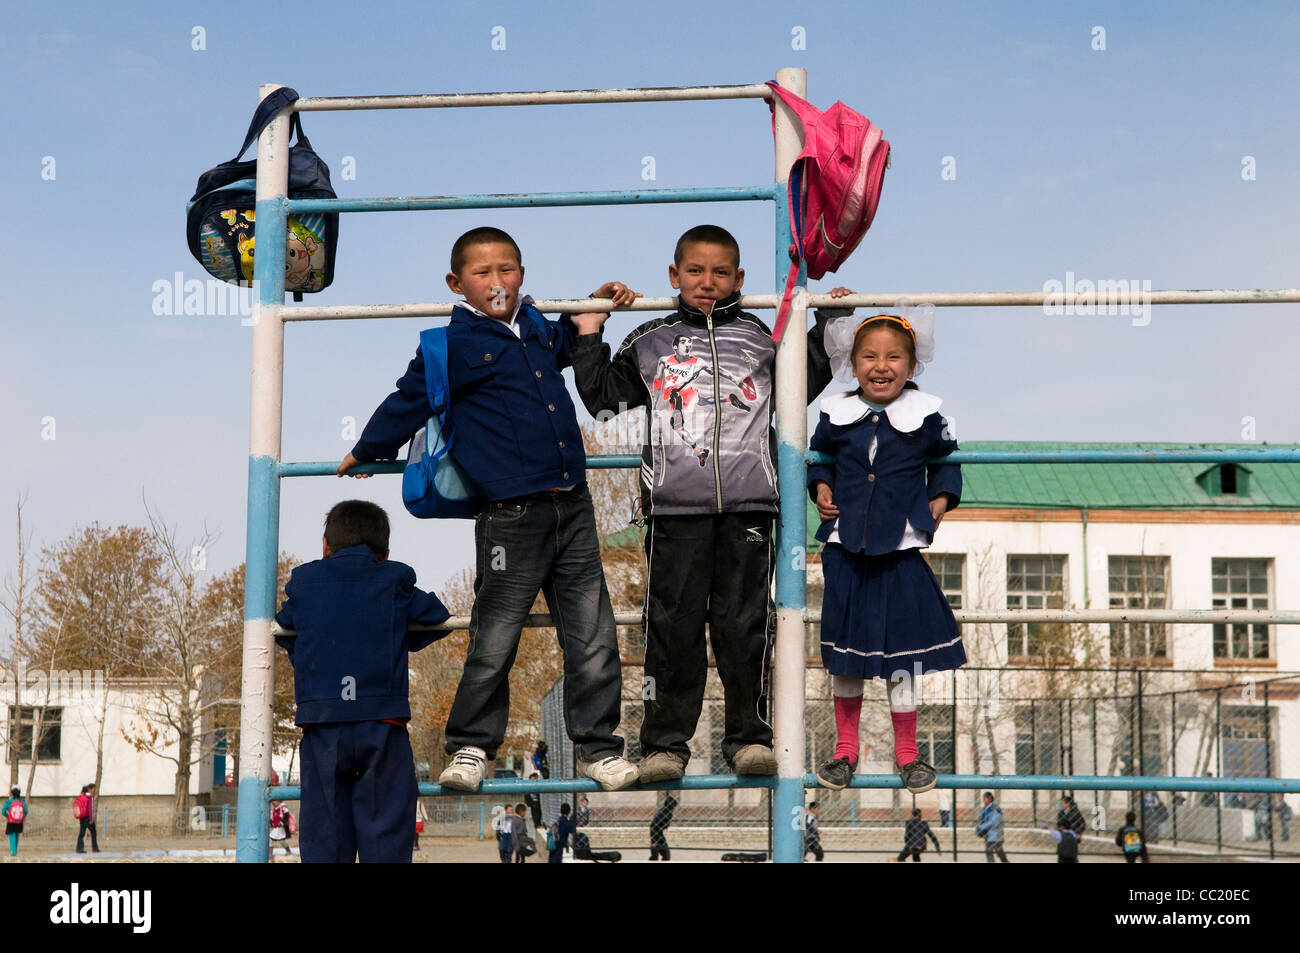 Cute Kazakh school children. - Stock Image